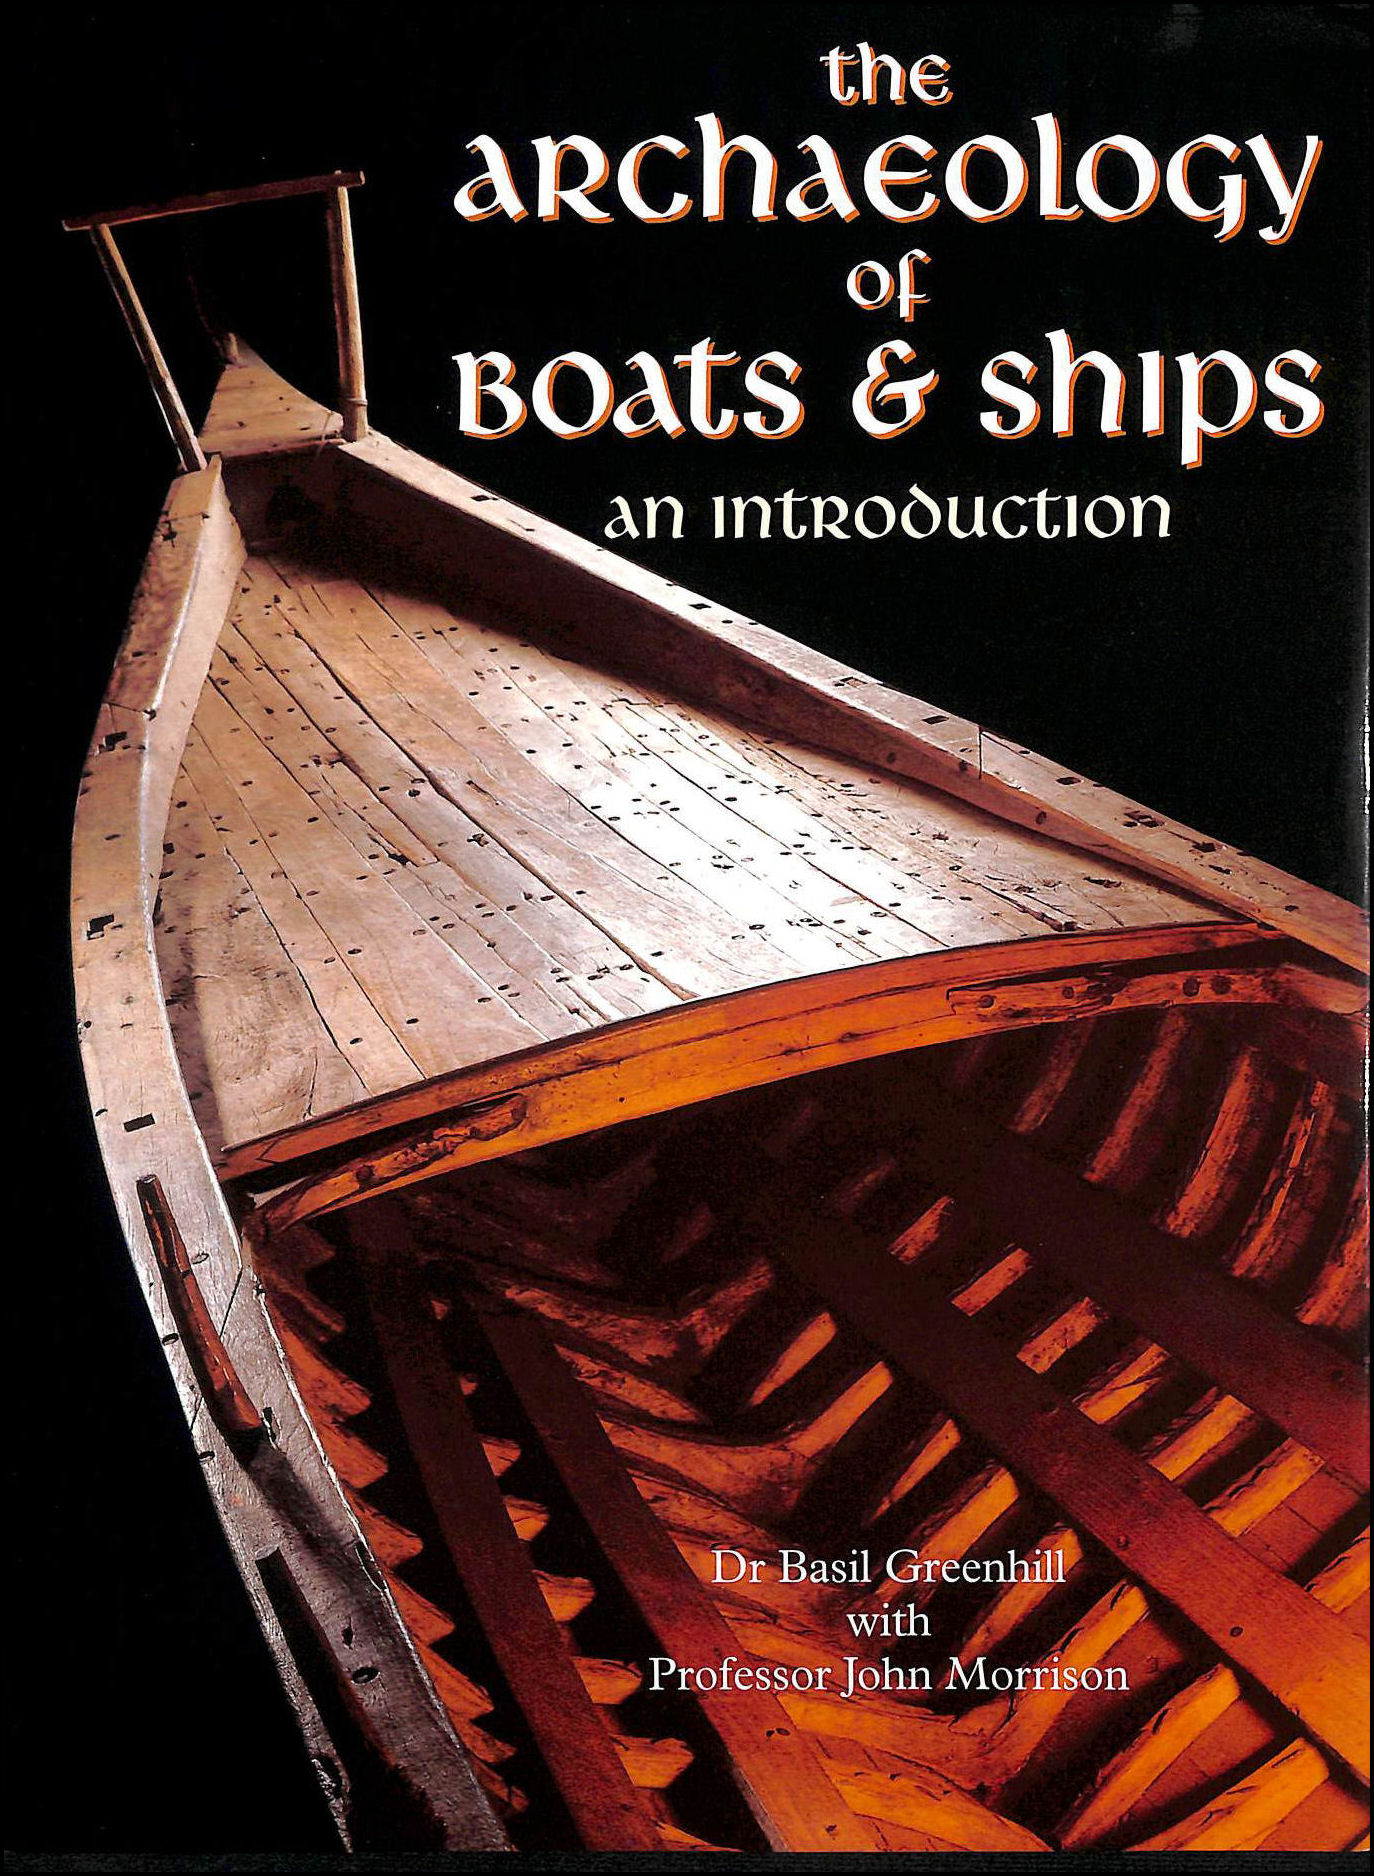 Image for Archaeology of Boats and Ships: An Introduction (Conway's merchant, marine & maritime history)